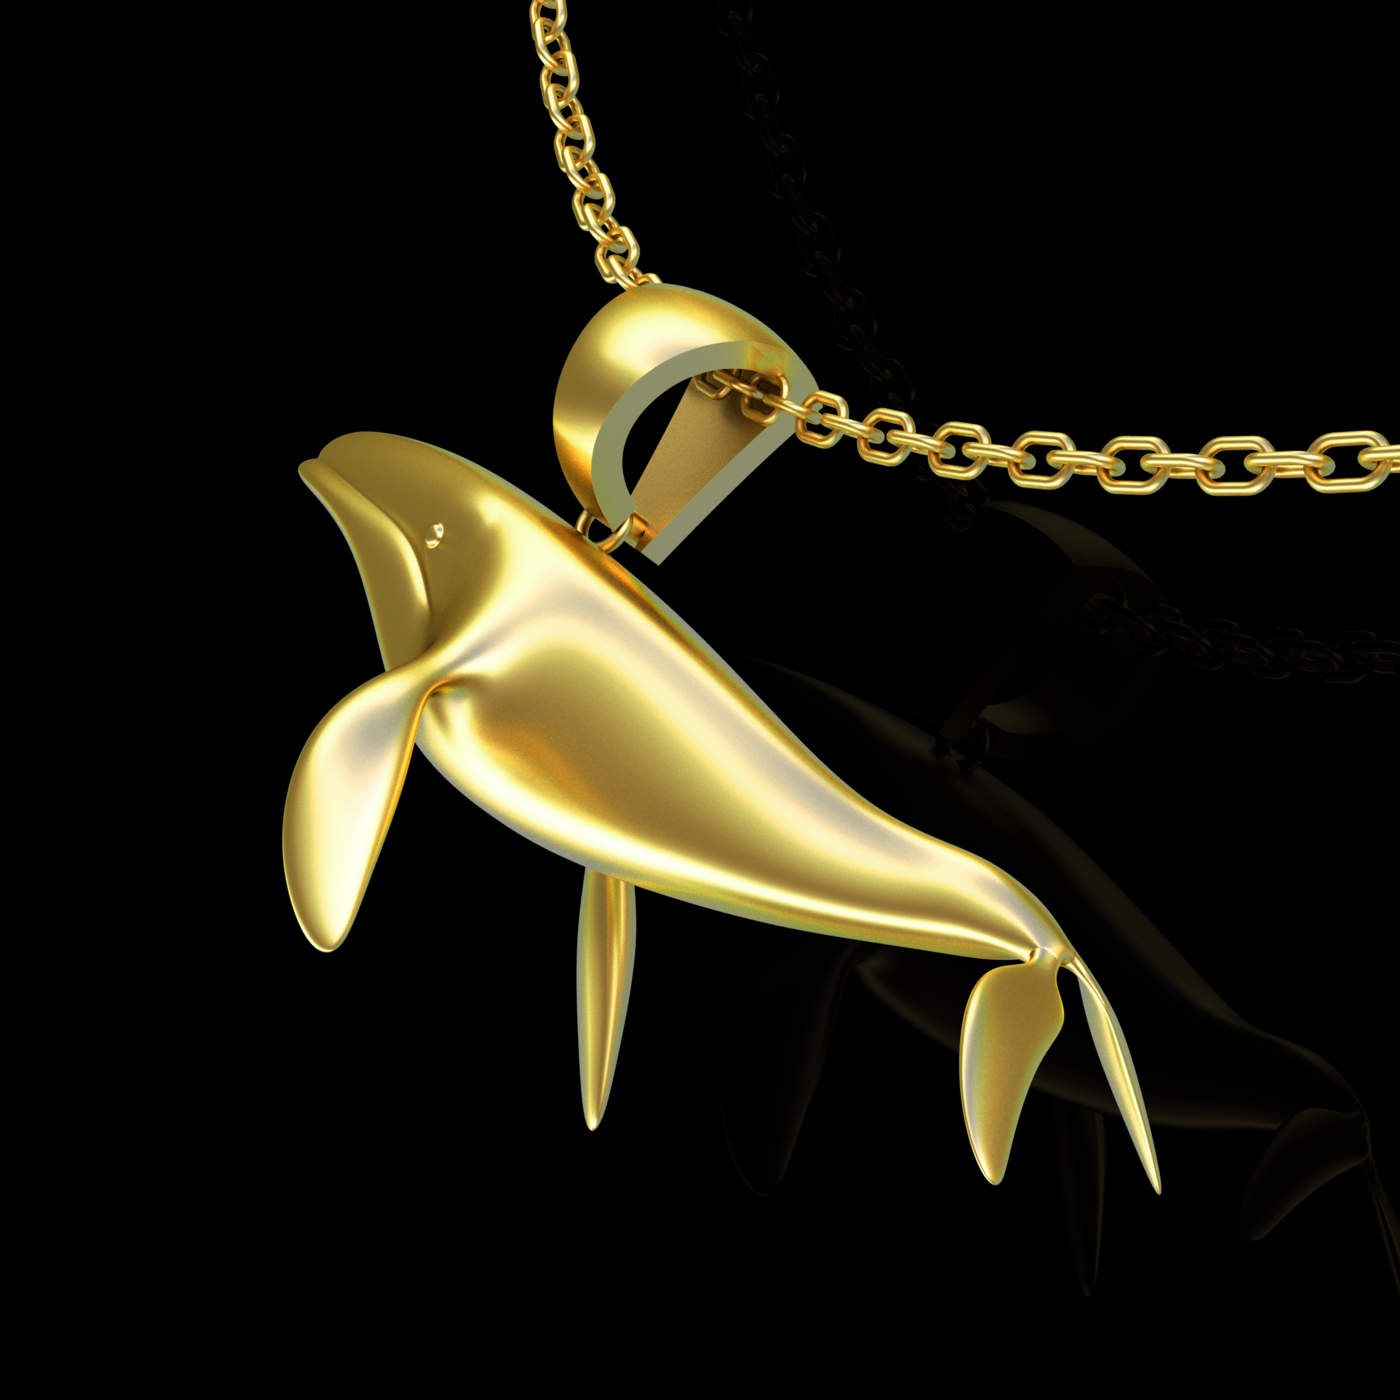 Big Whale Pendant jewelry Gold 3D print model